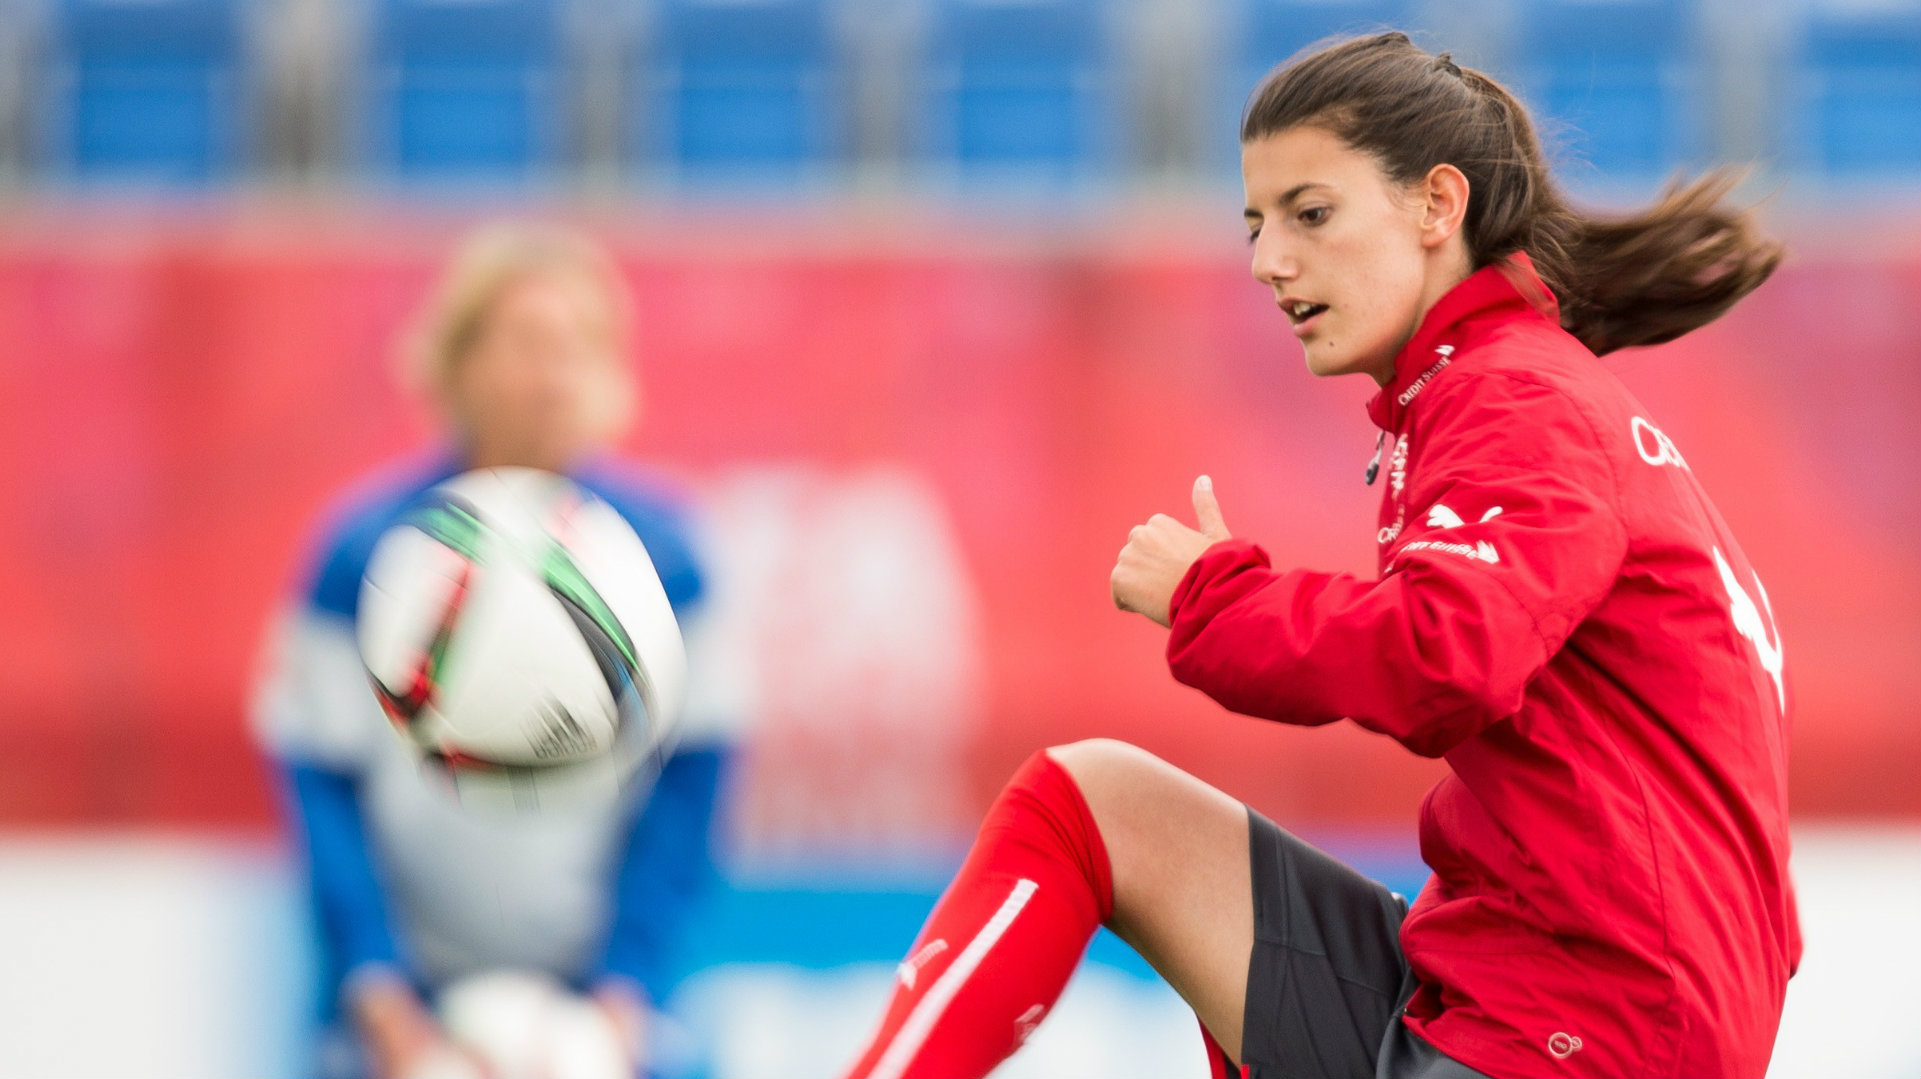 Swiss female footballer missing after swimming accident